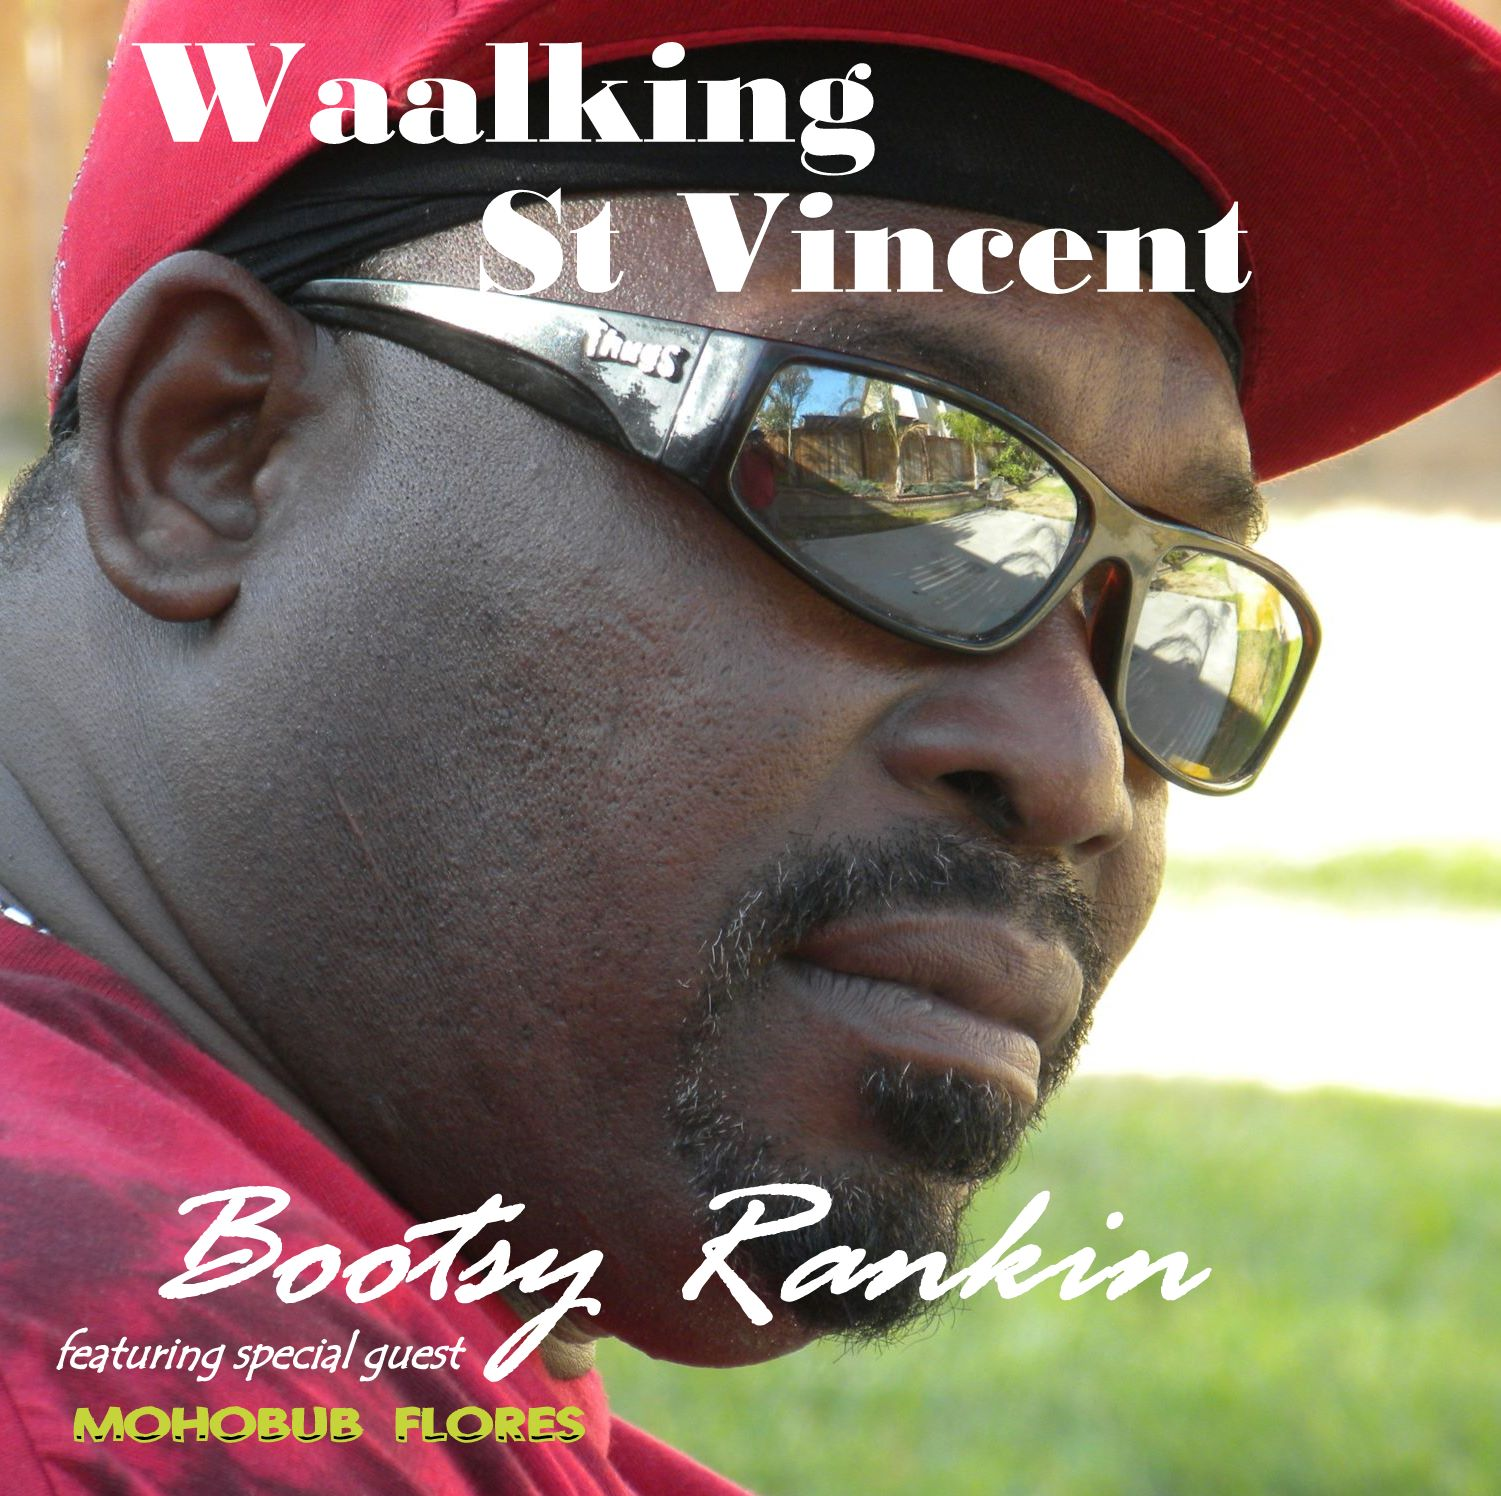 "Bootsy Rankin featuring special guest MOHOBUB FLORES, ""Waalking St Vincent: Produced by: Bill Cayetano for Sellis Records Productions"